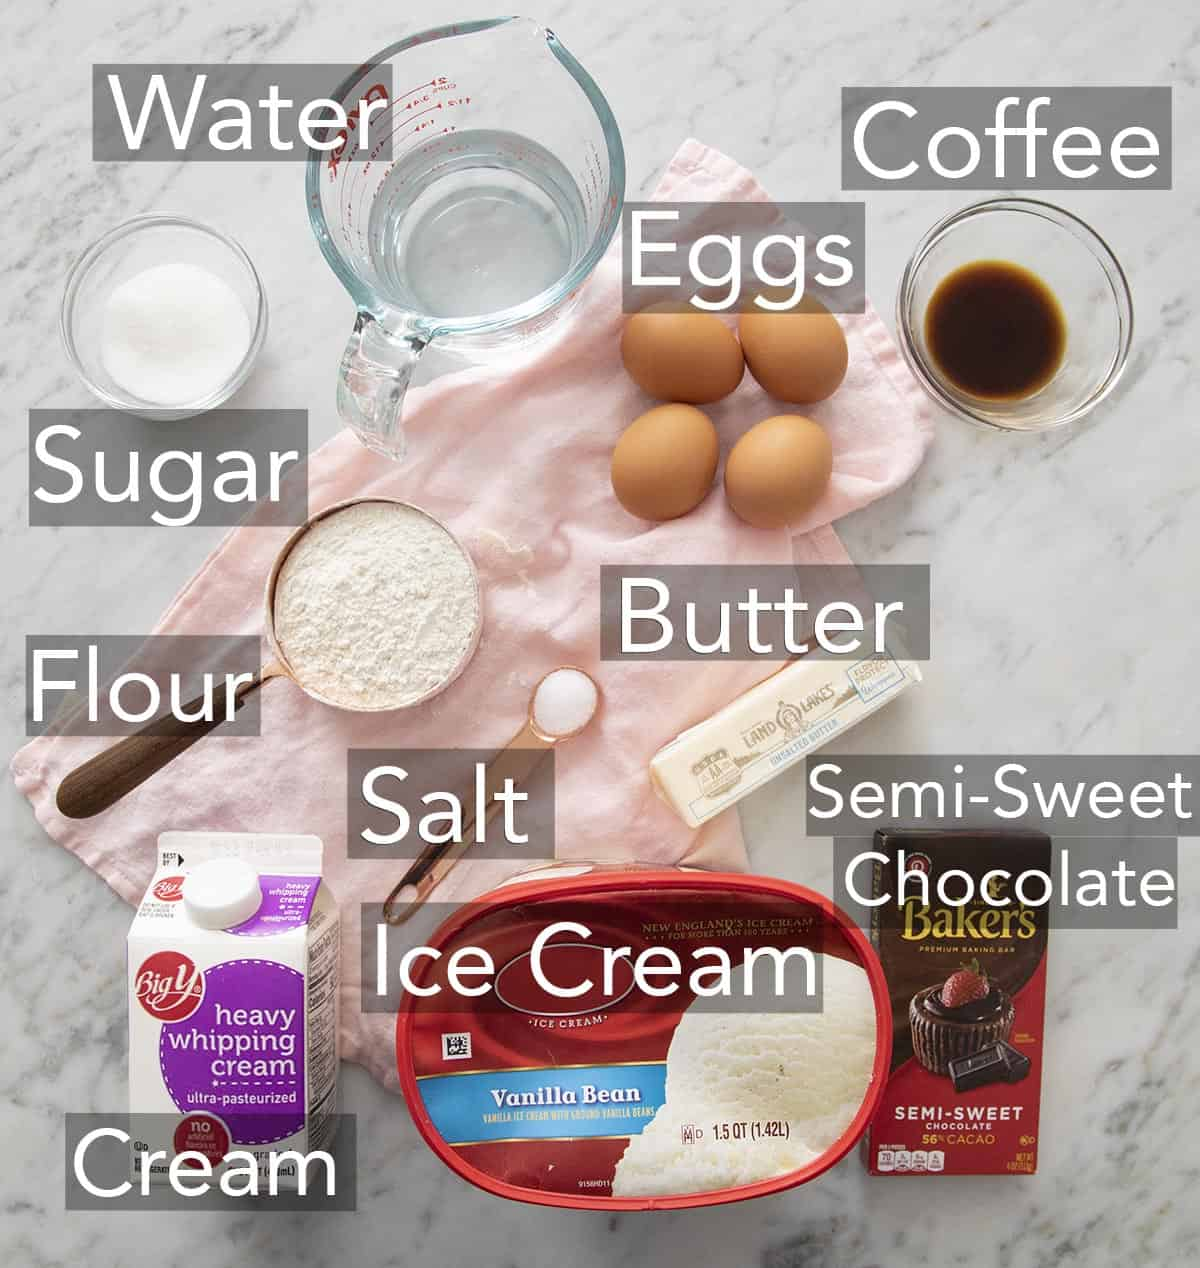 Ingredients for making profiteroles on a counter.